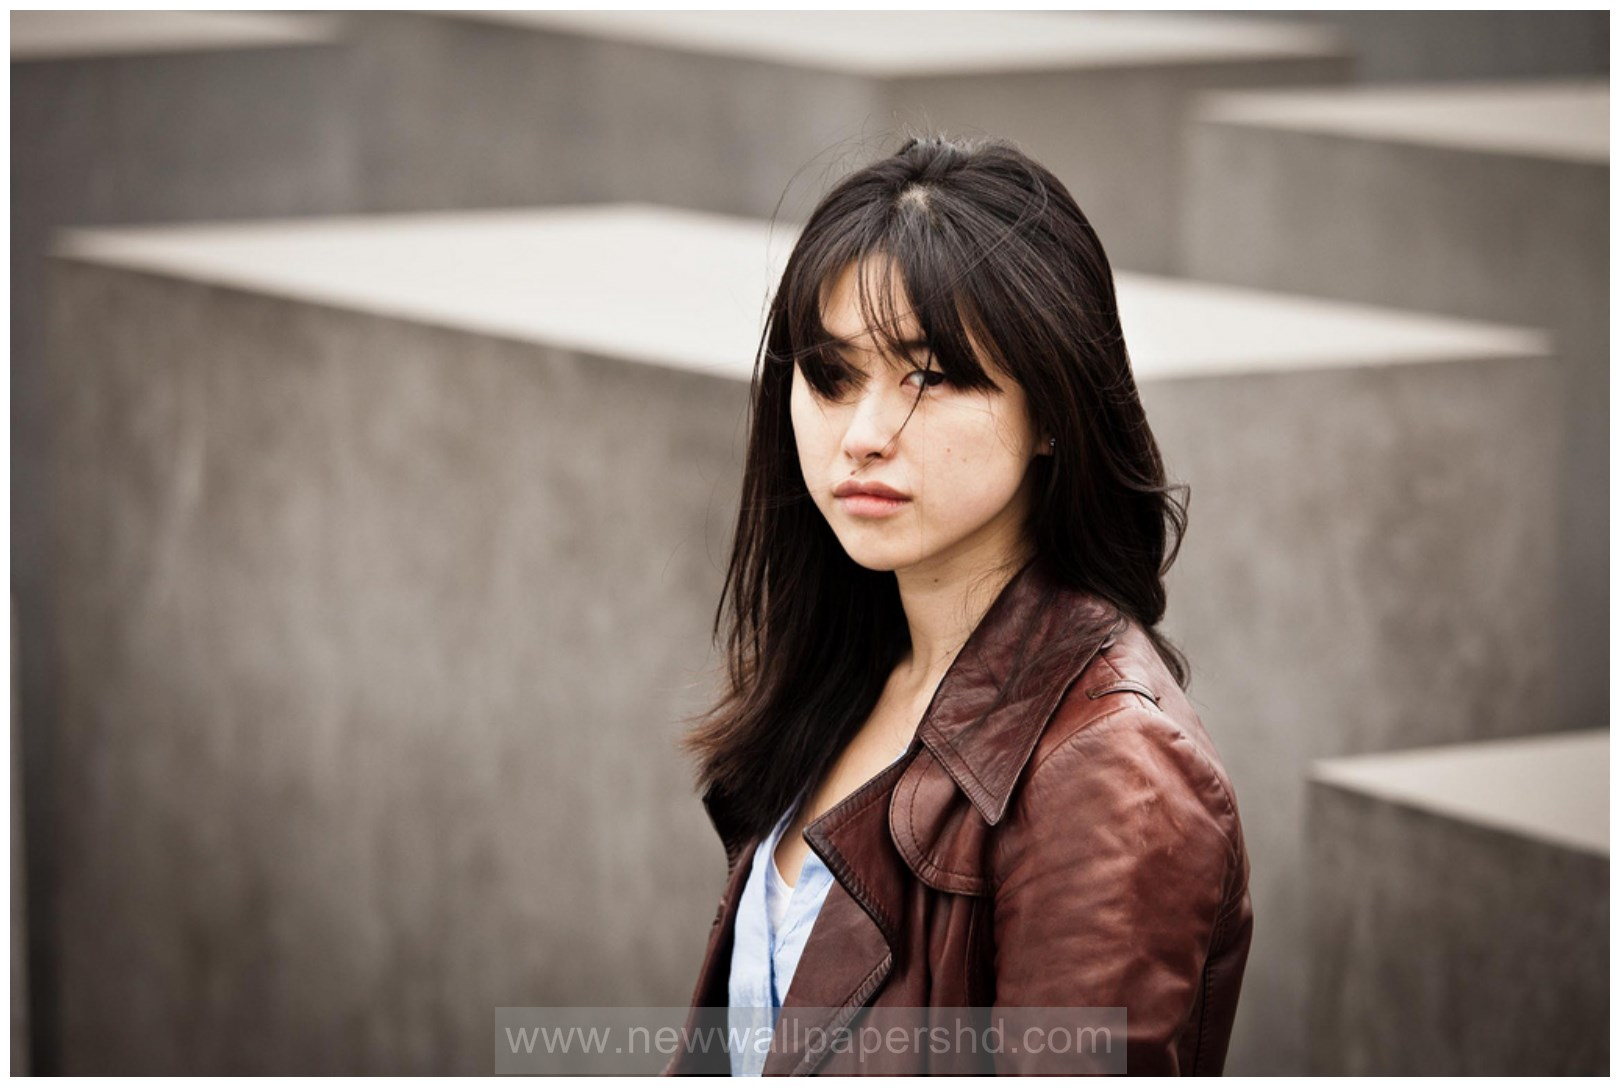 Latest Images of Zhu Zhu China Actress